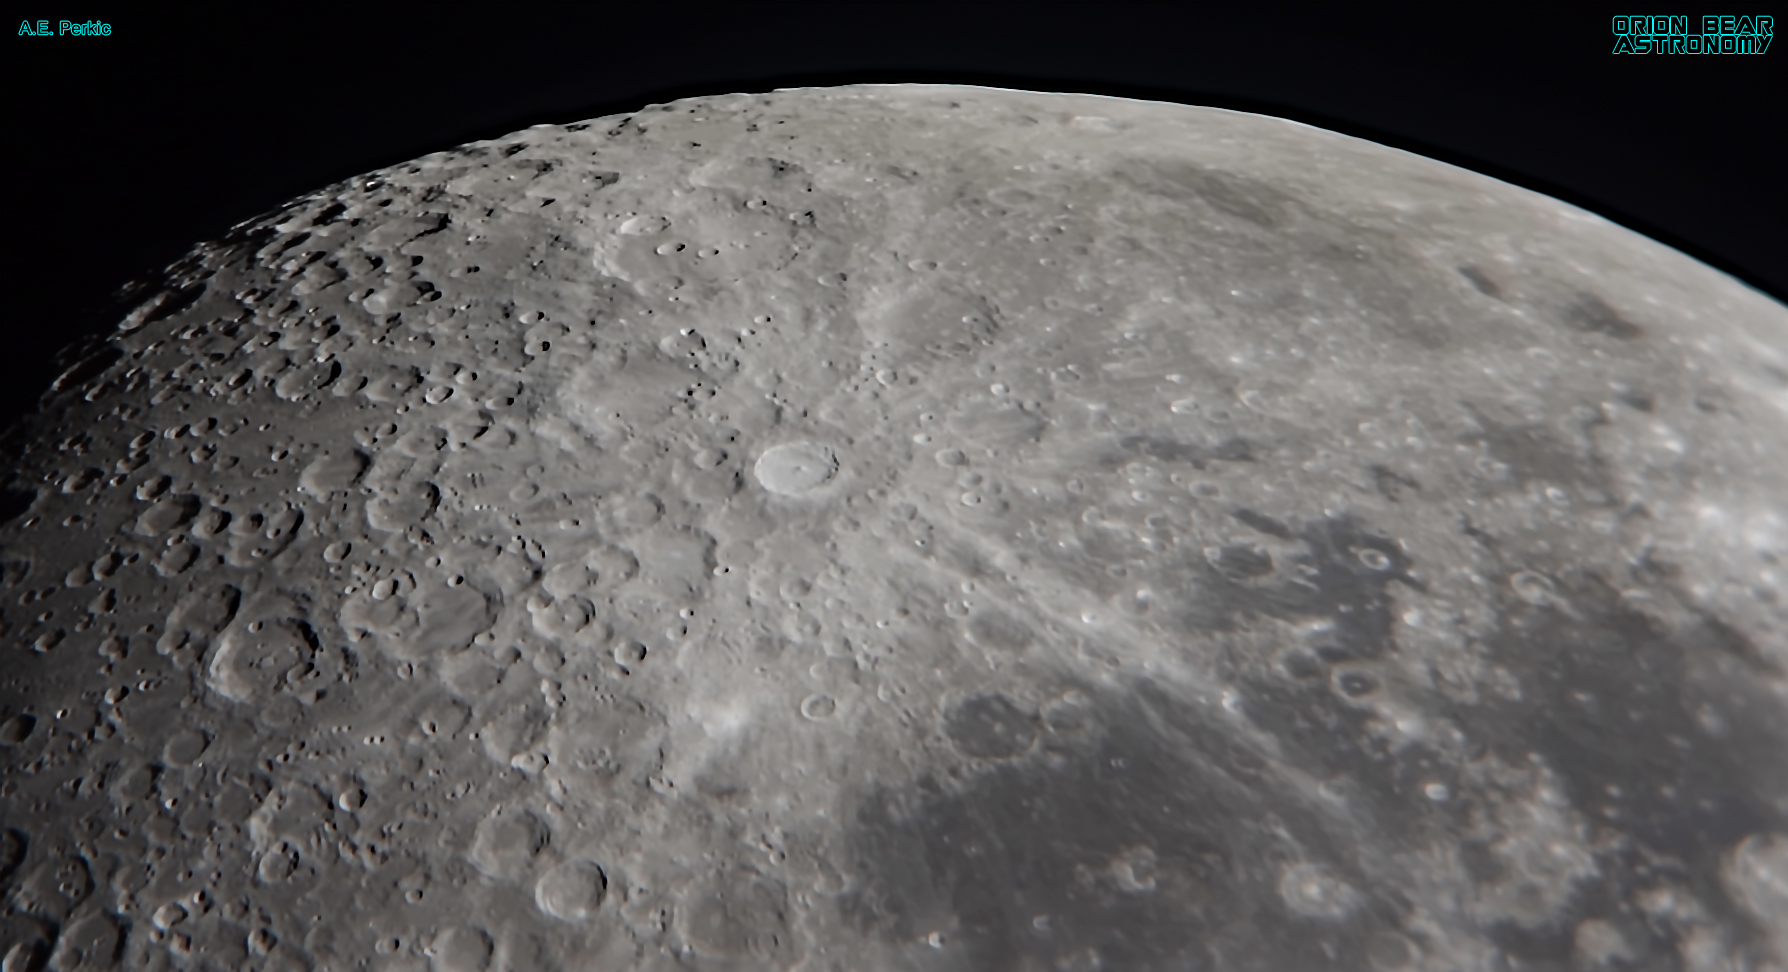 8-8-20 tycho crater moon